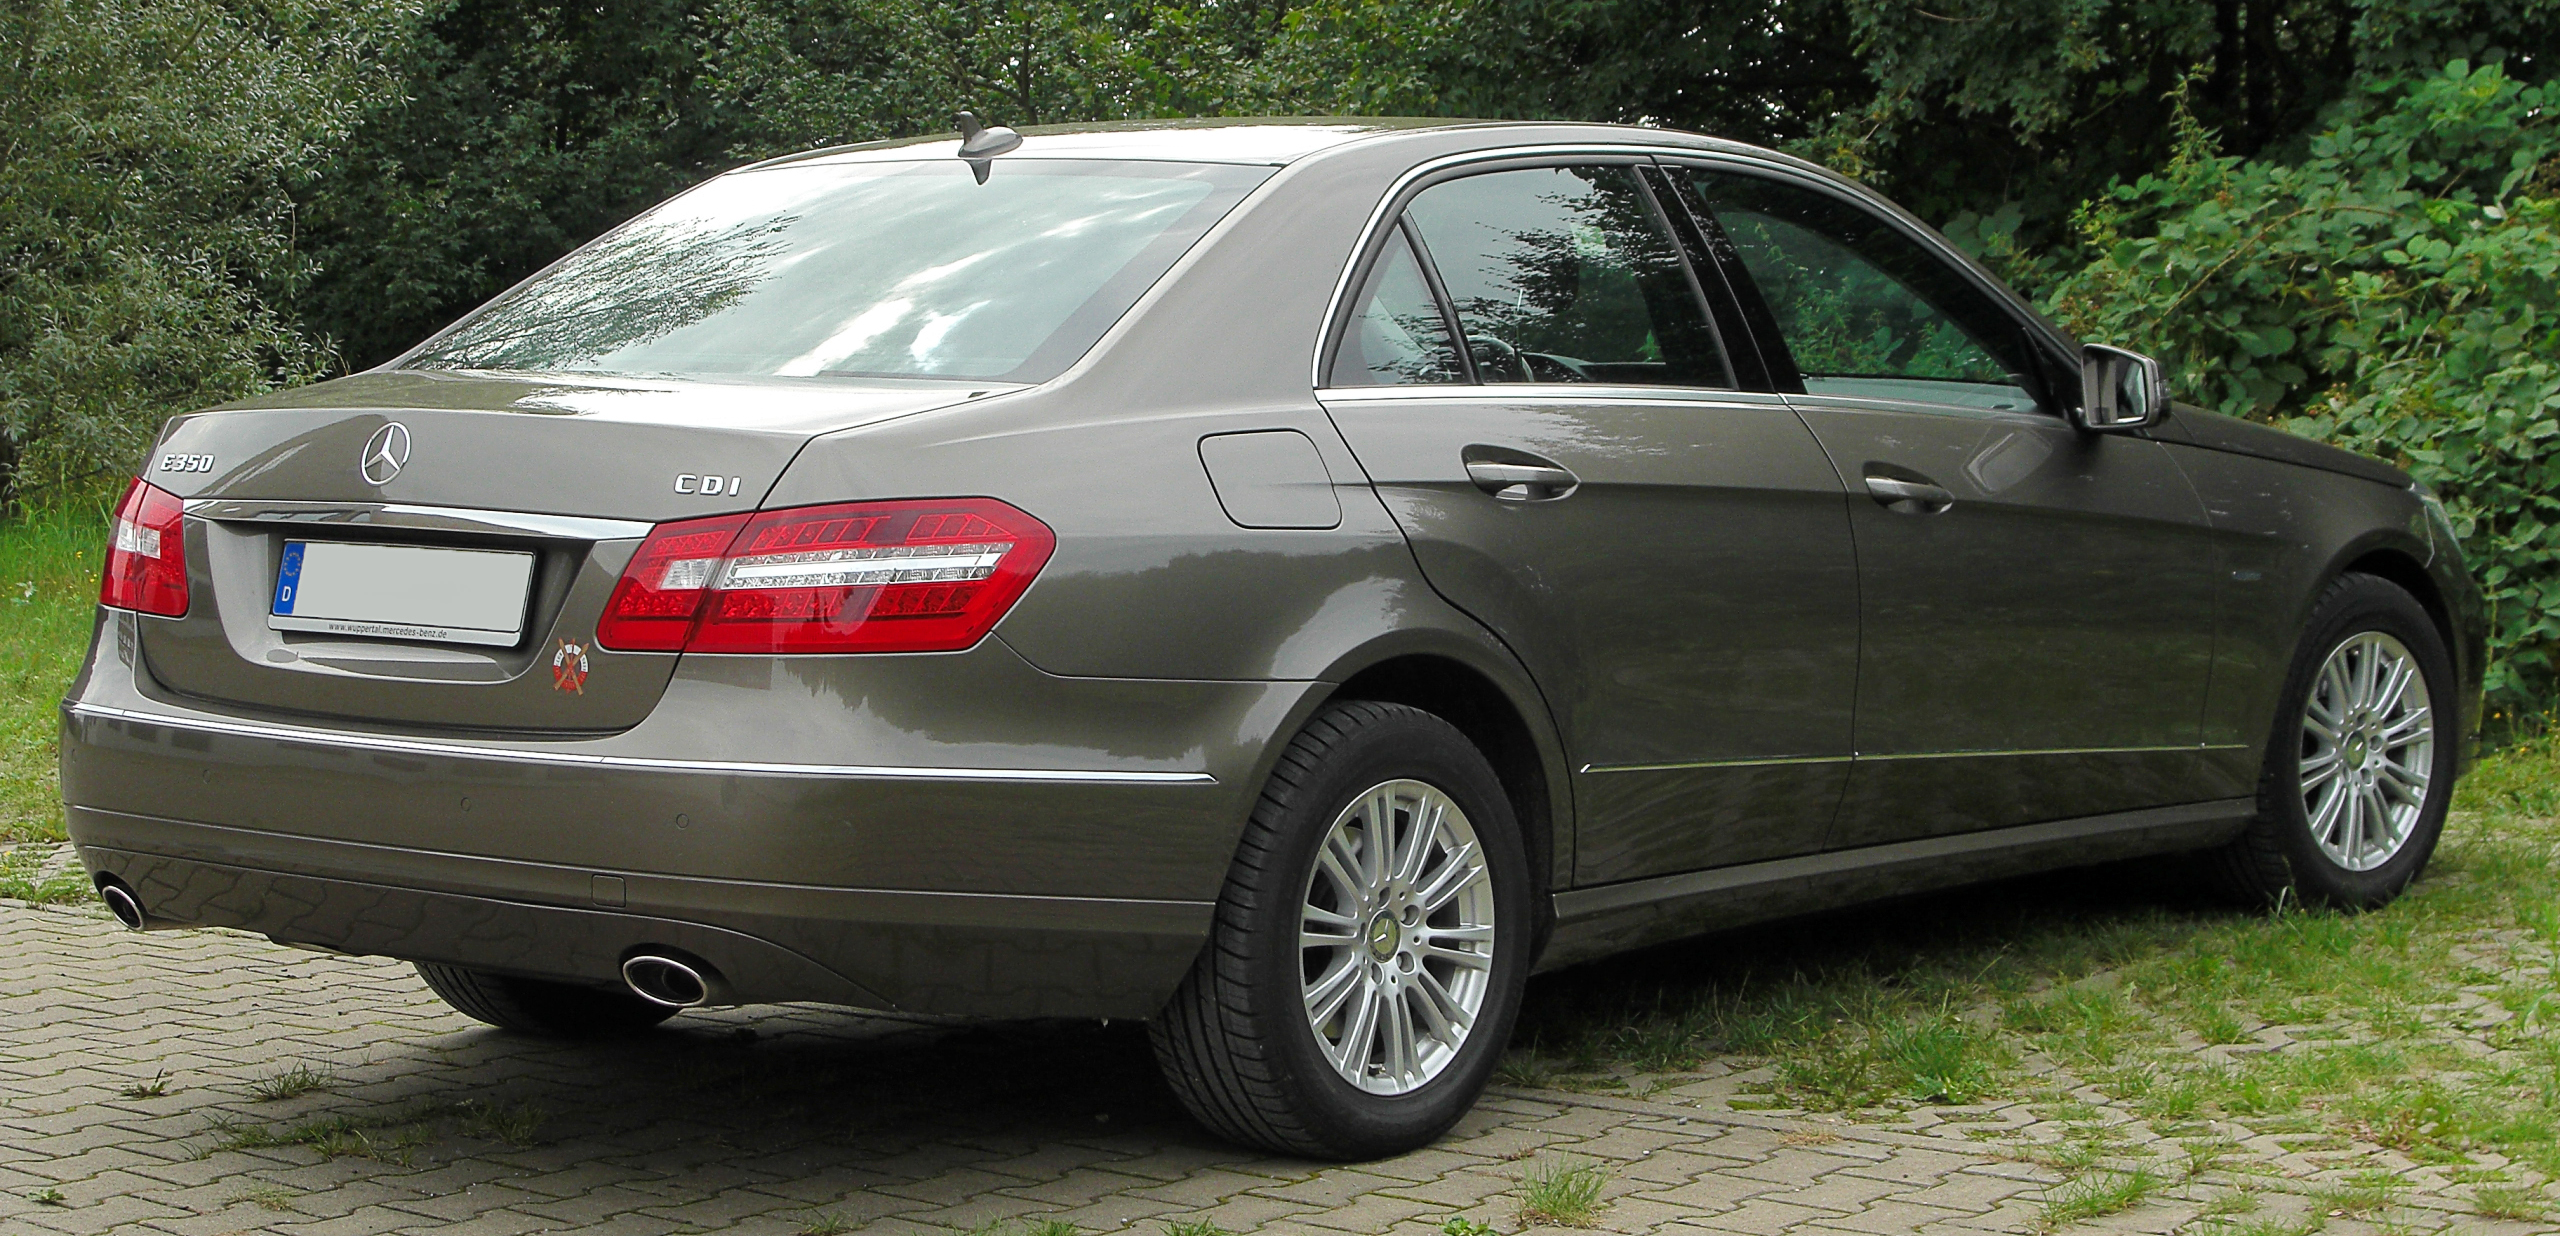 Dateimercedes E 350 Cdi Blueefficiency Elegance W212 Rear 1